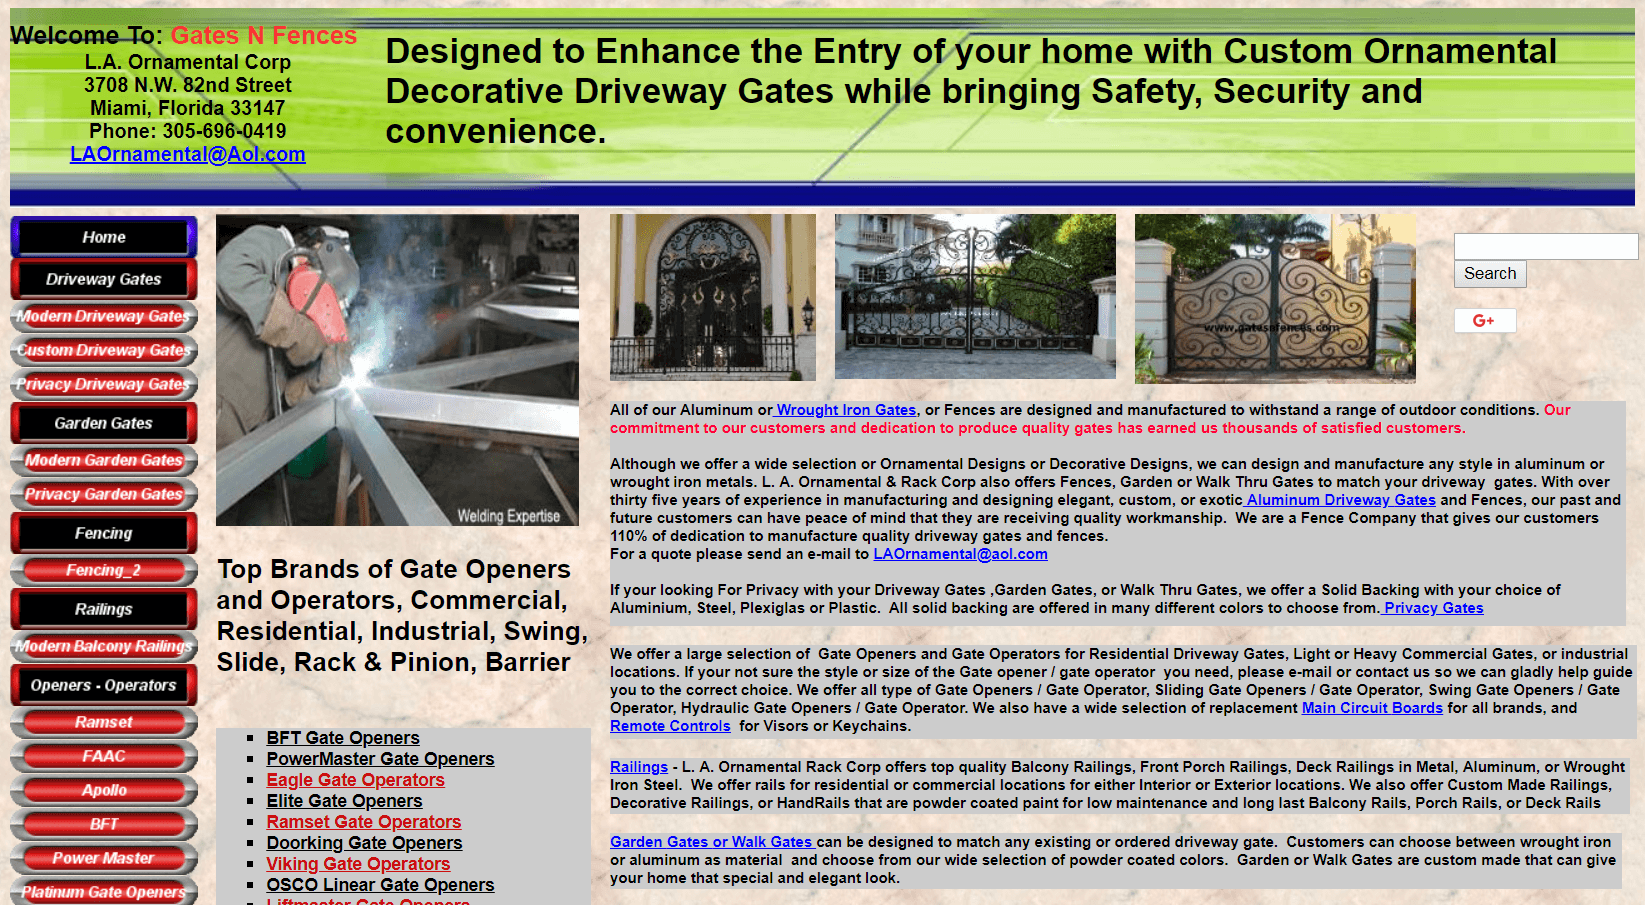 The Gates N Fences website.